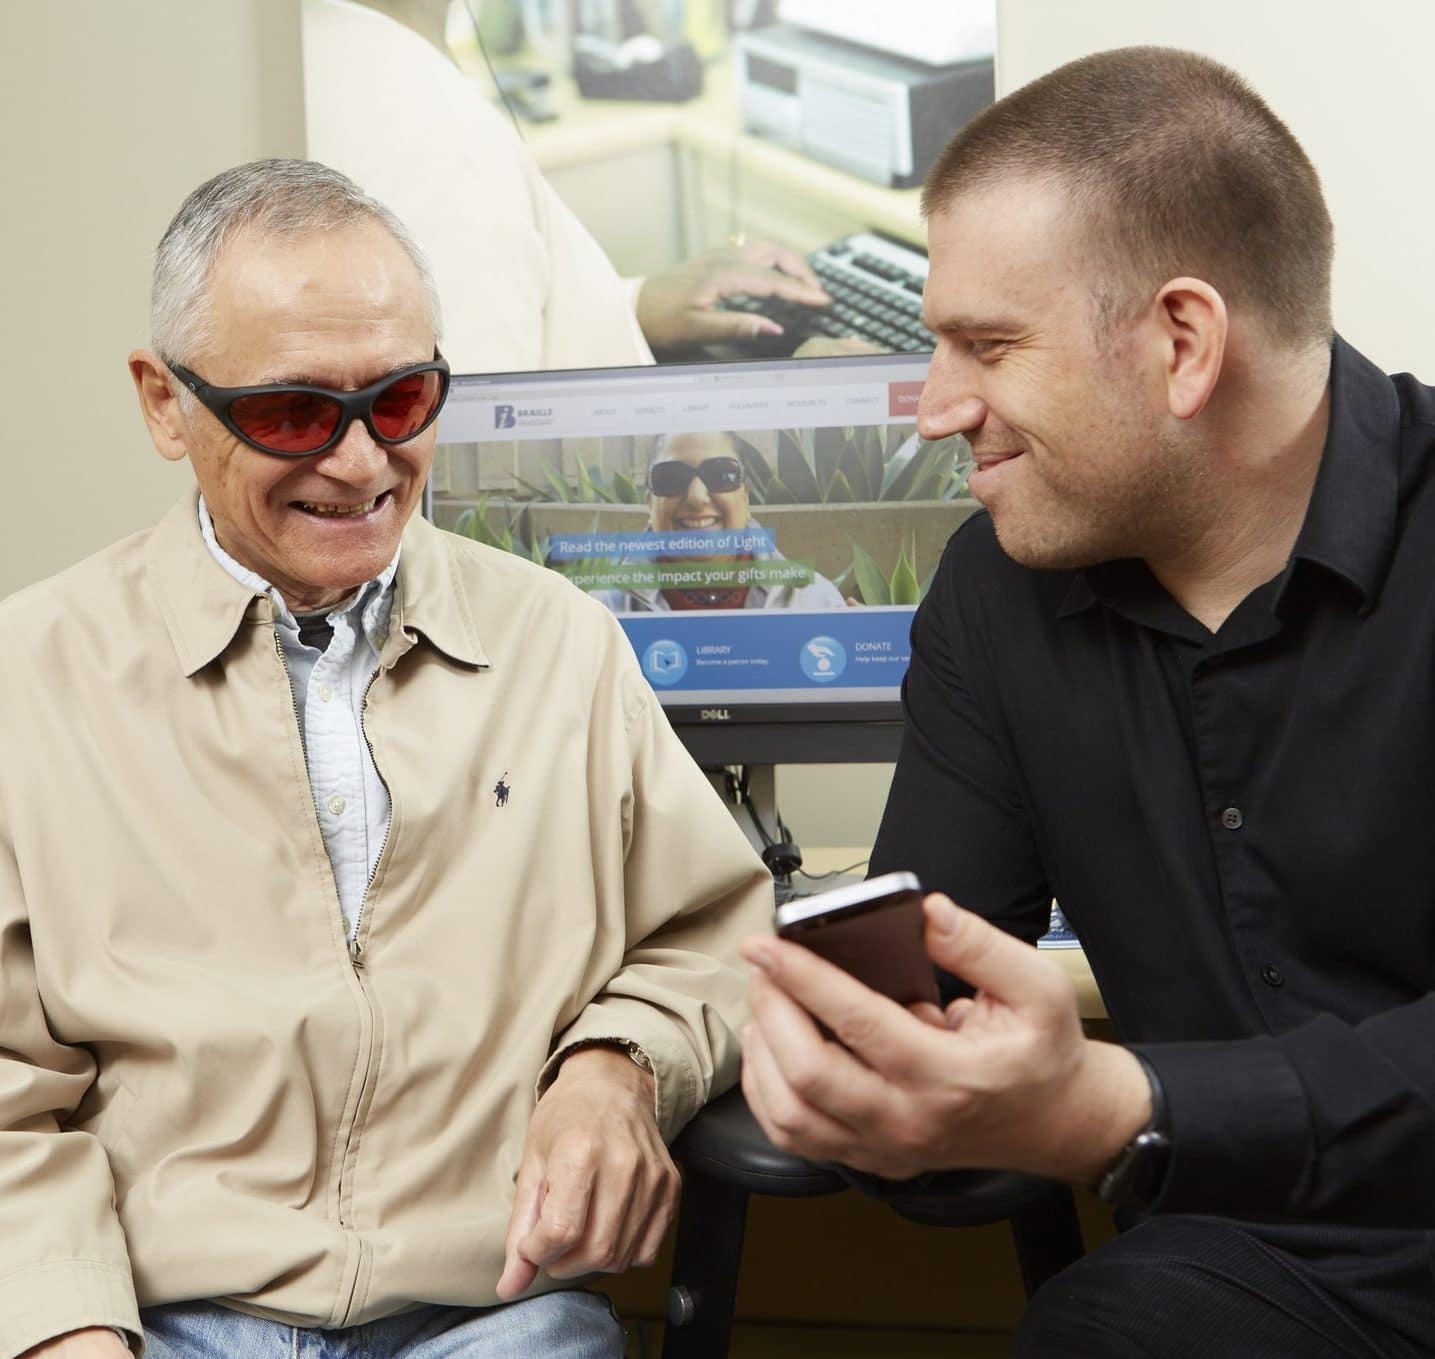 A man showing an older man something on a smartphone